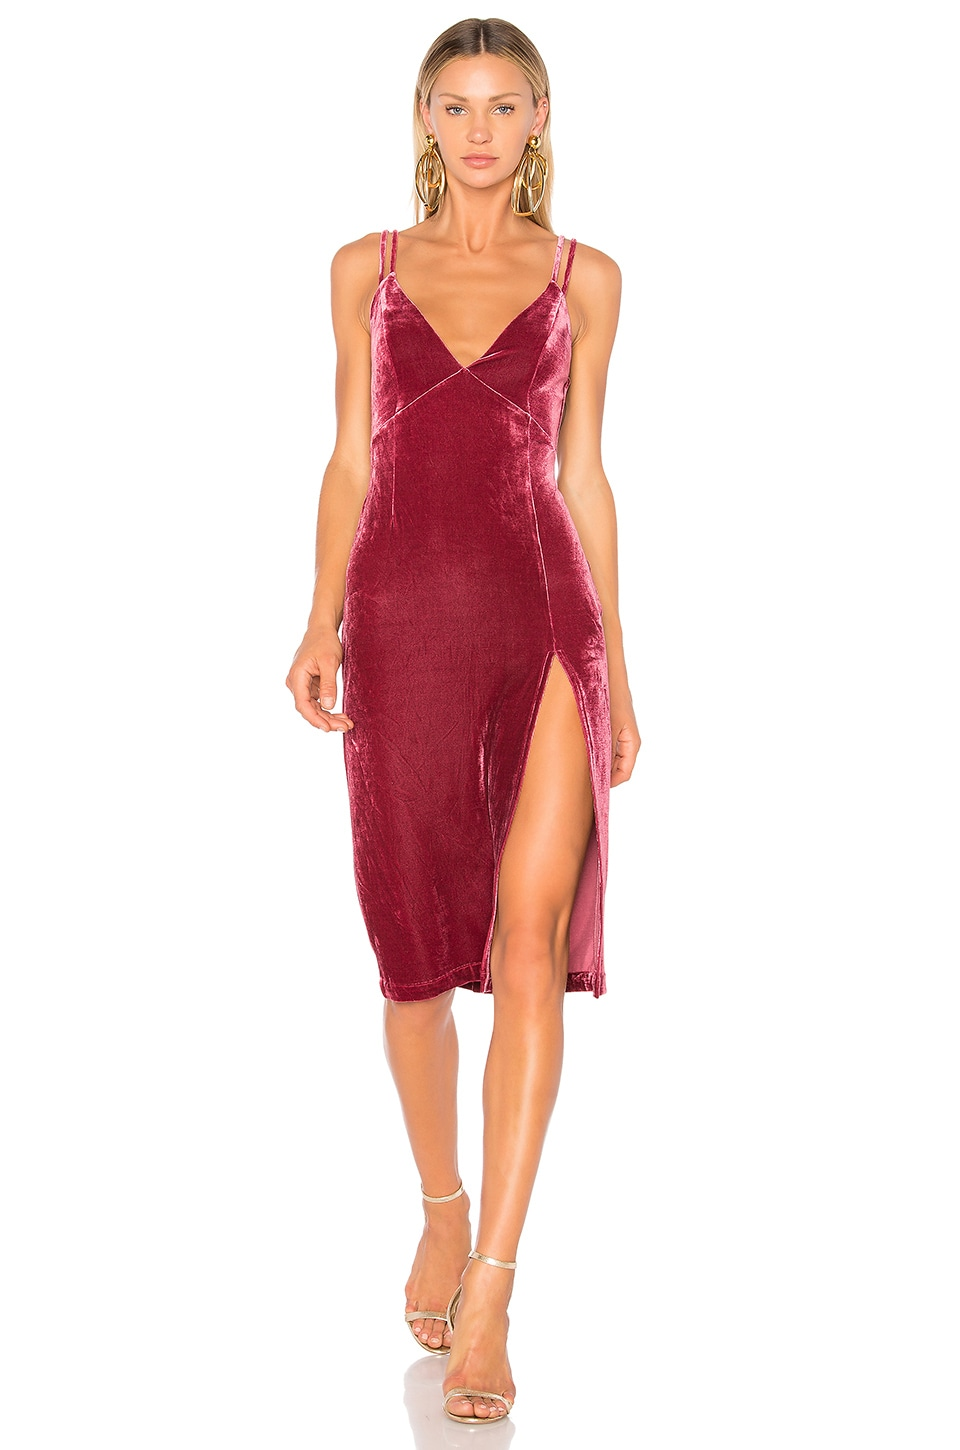 NBD X REVOLVE Shine On Dress in Mauve